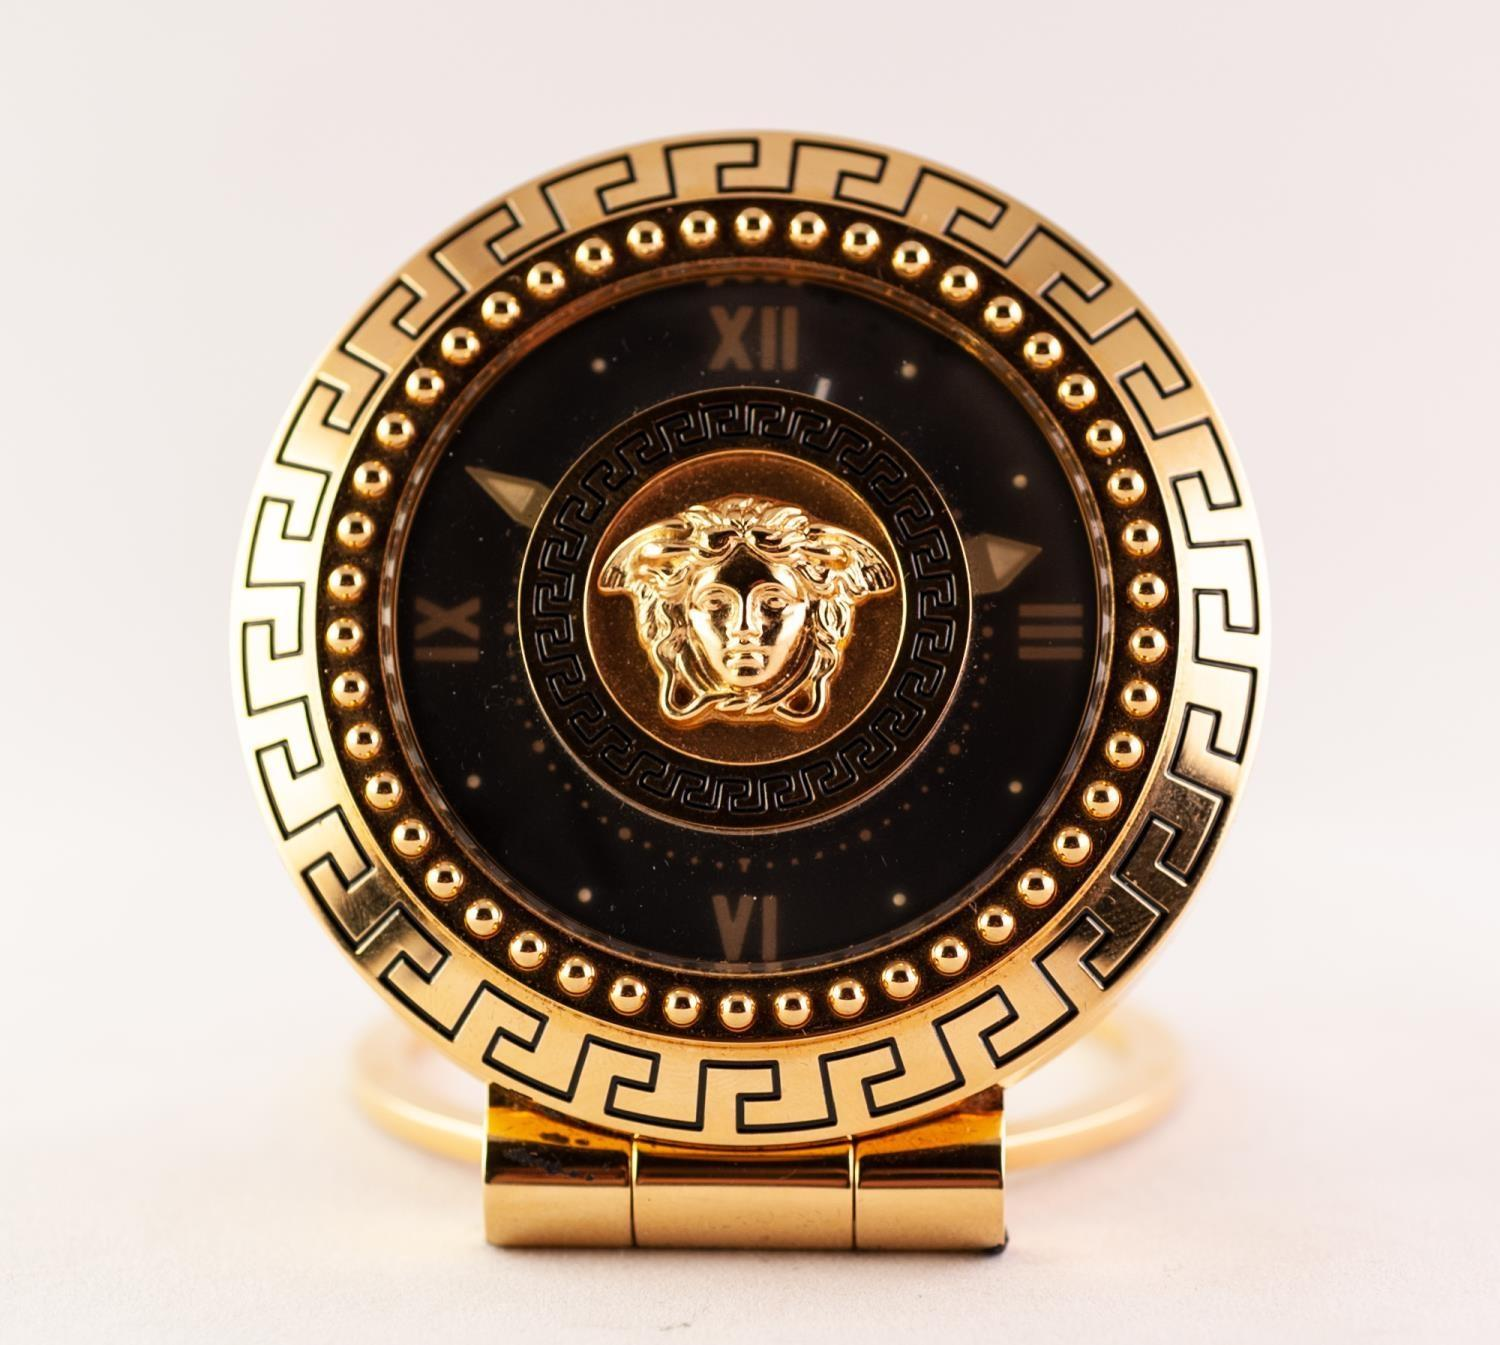 Lot 37 - A GIANNI VERSACE TRAVEL/DESK CLOCK The circular black dial with Roman numeral quarter markers,